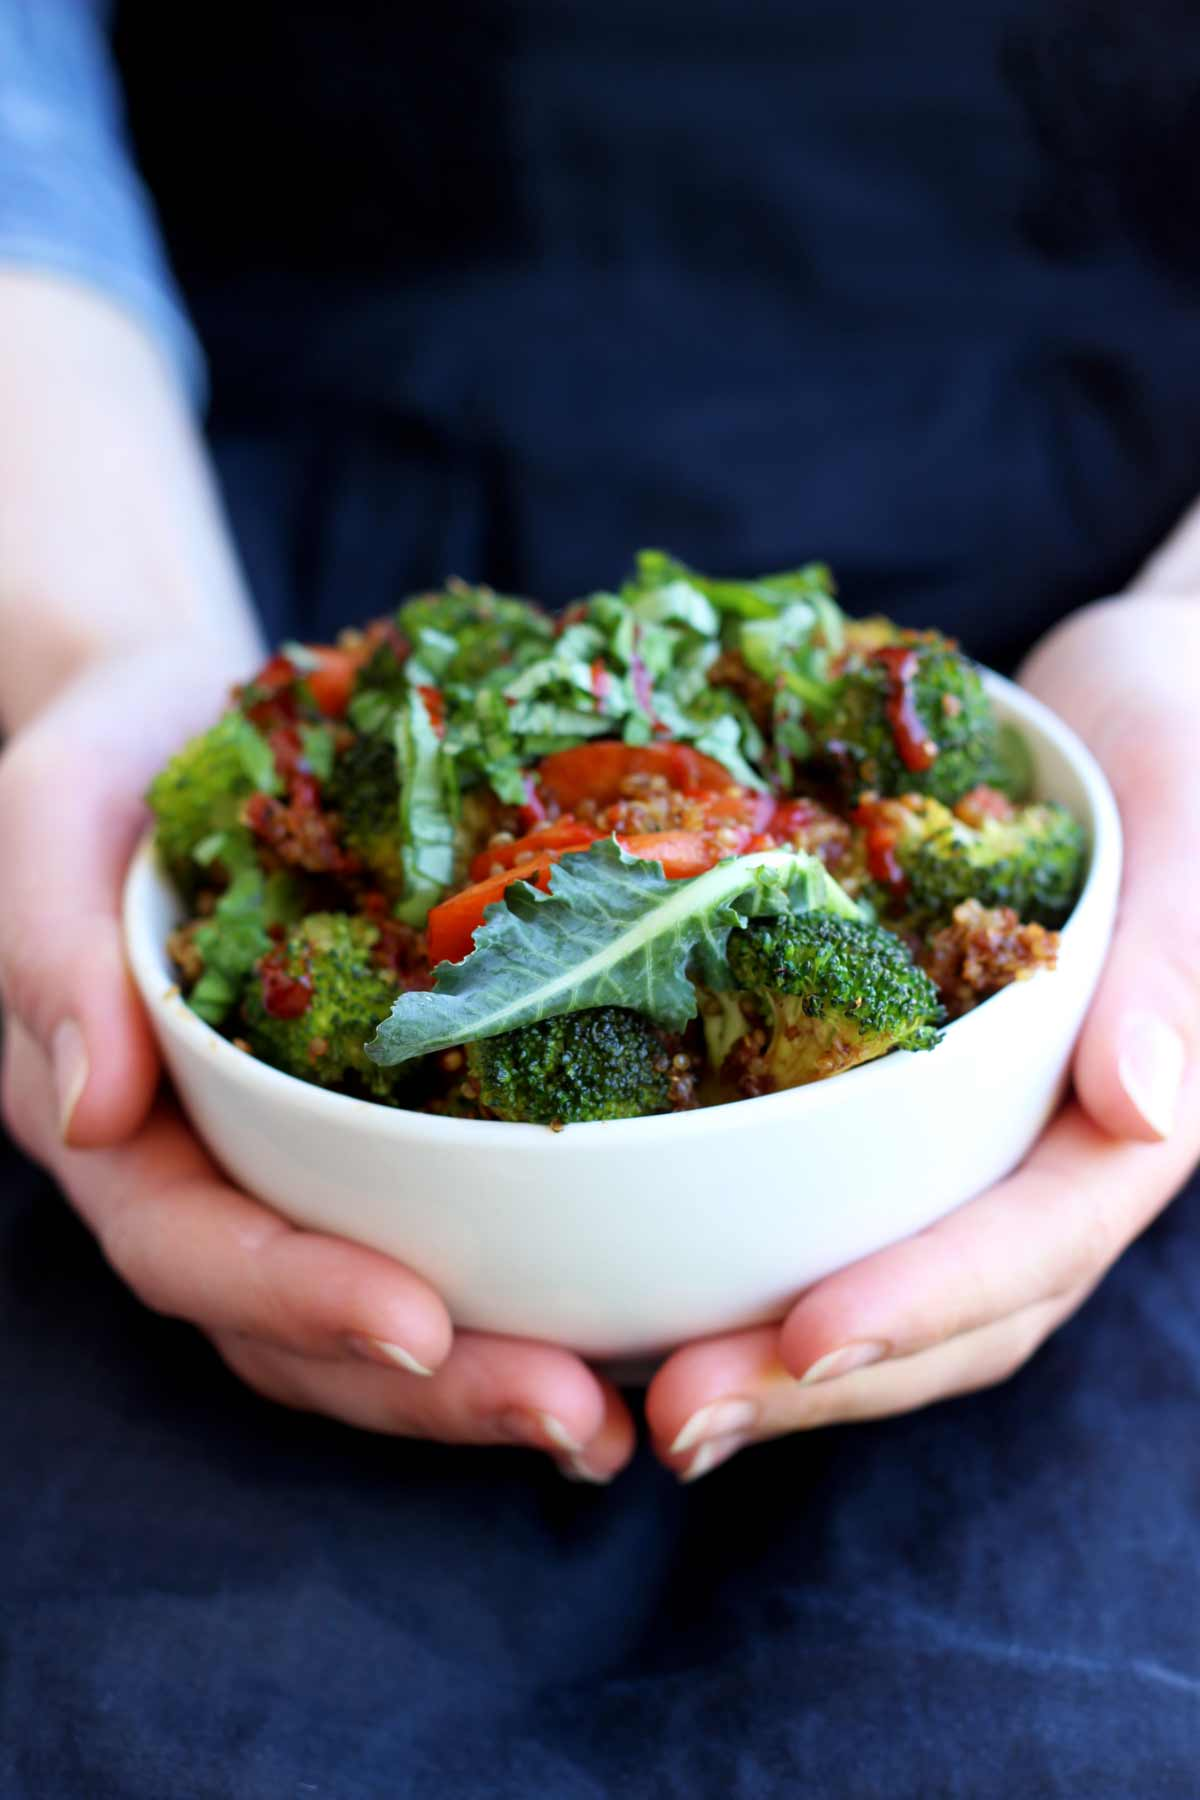 Simple Vegan Quinoa Fried Rice - Holding in Hands in a White Bowl